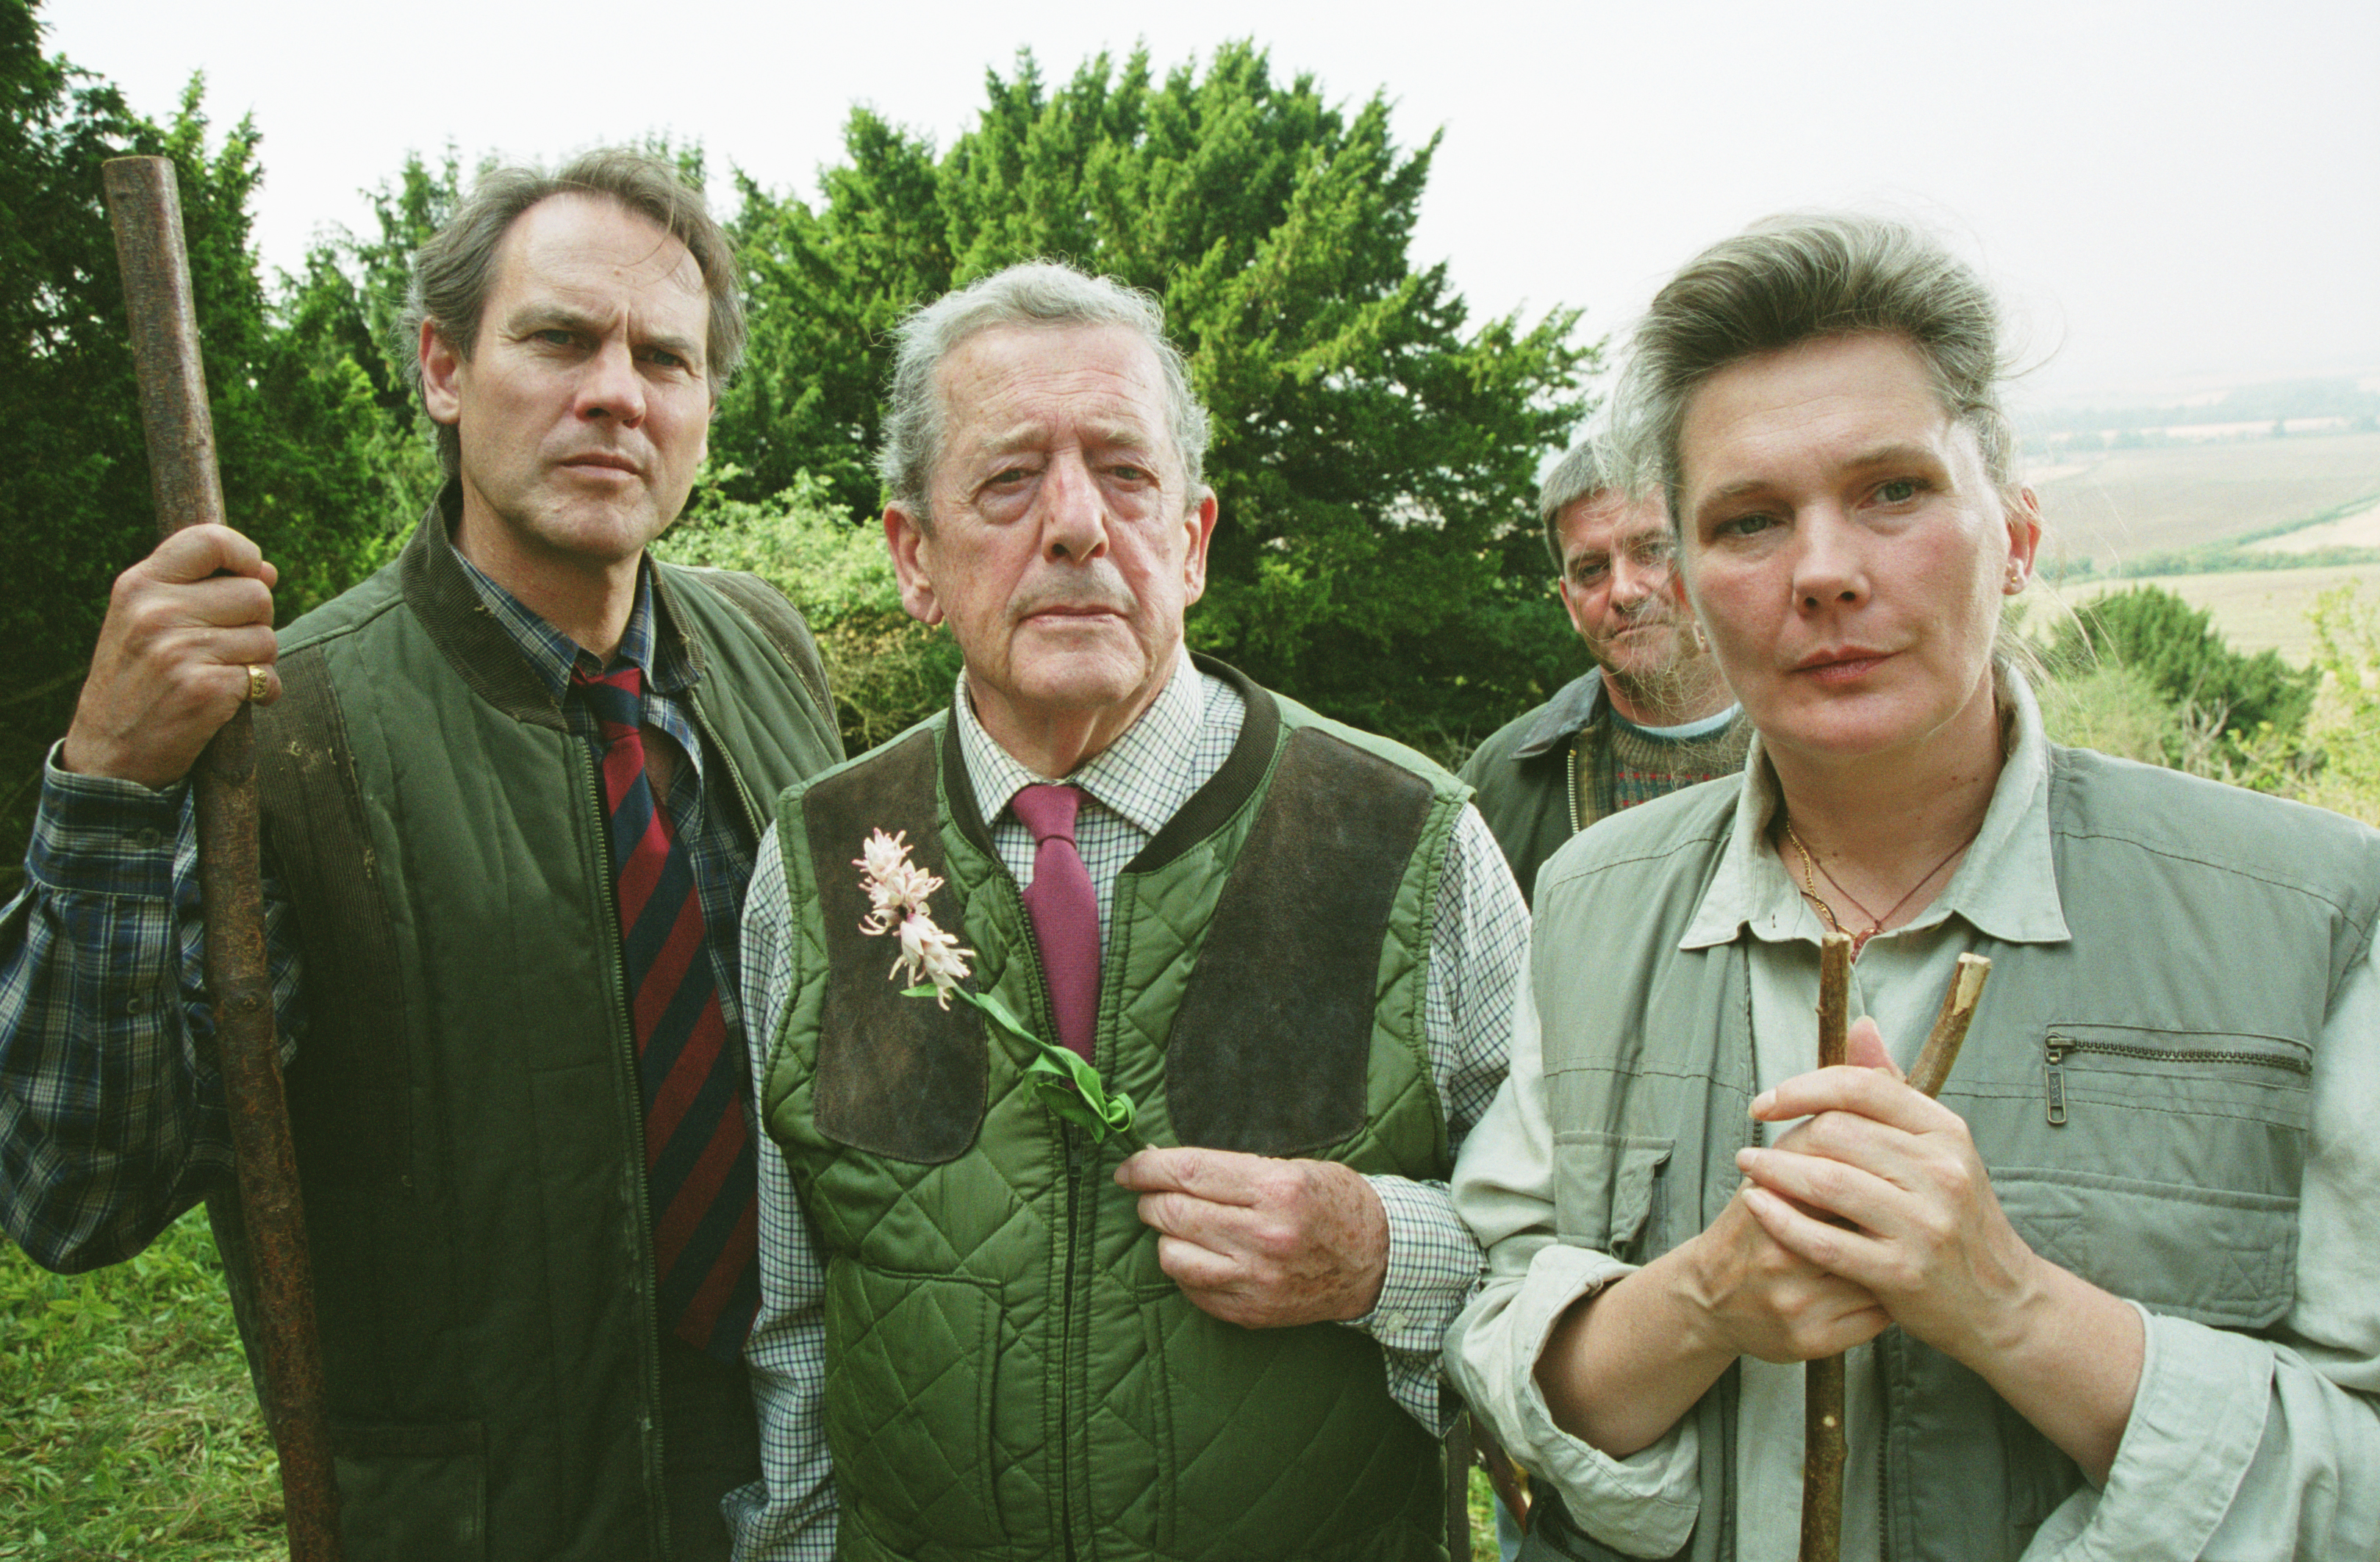 Midsomer Murders (TV Series 1997– ) - Full Cast & Crew - IMDb